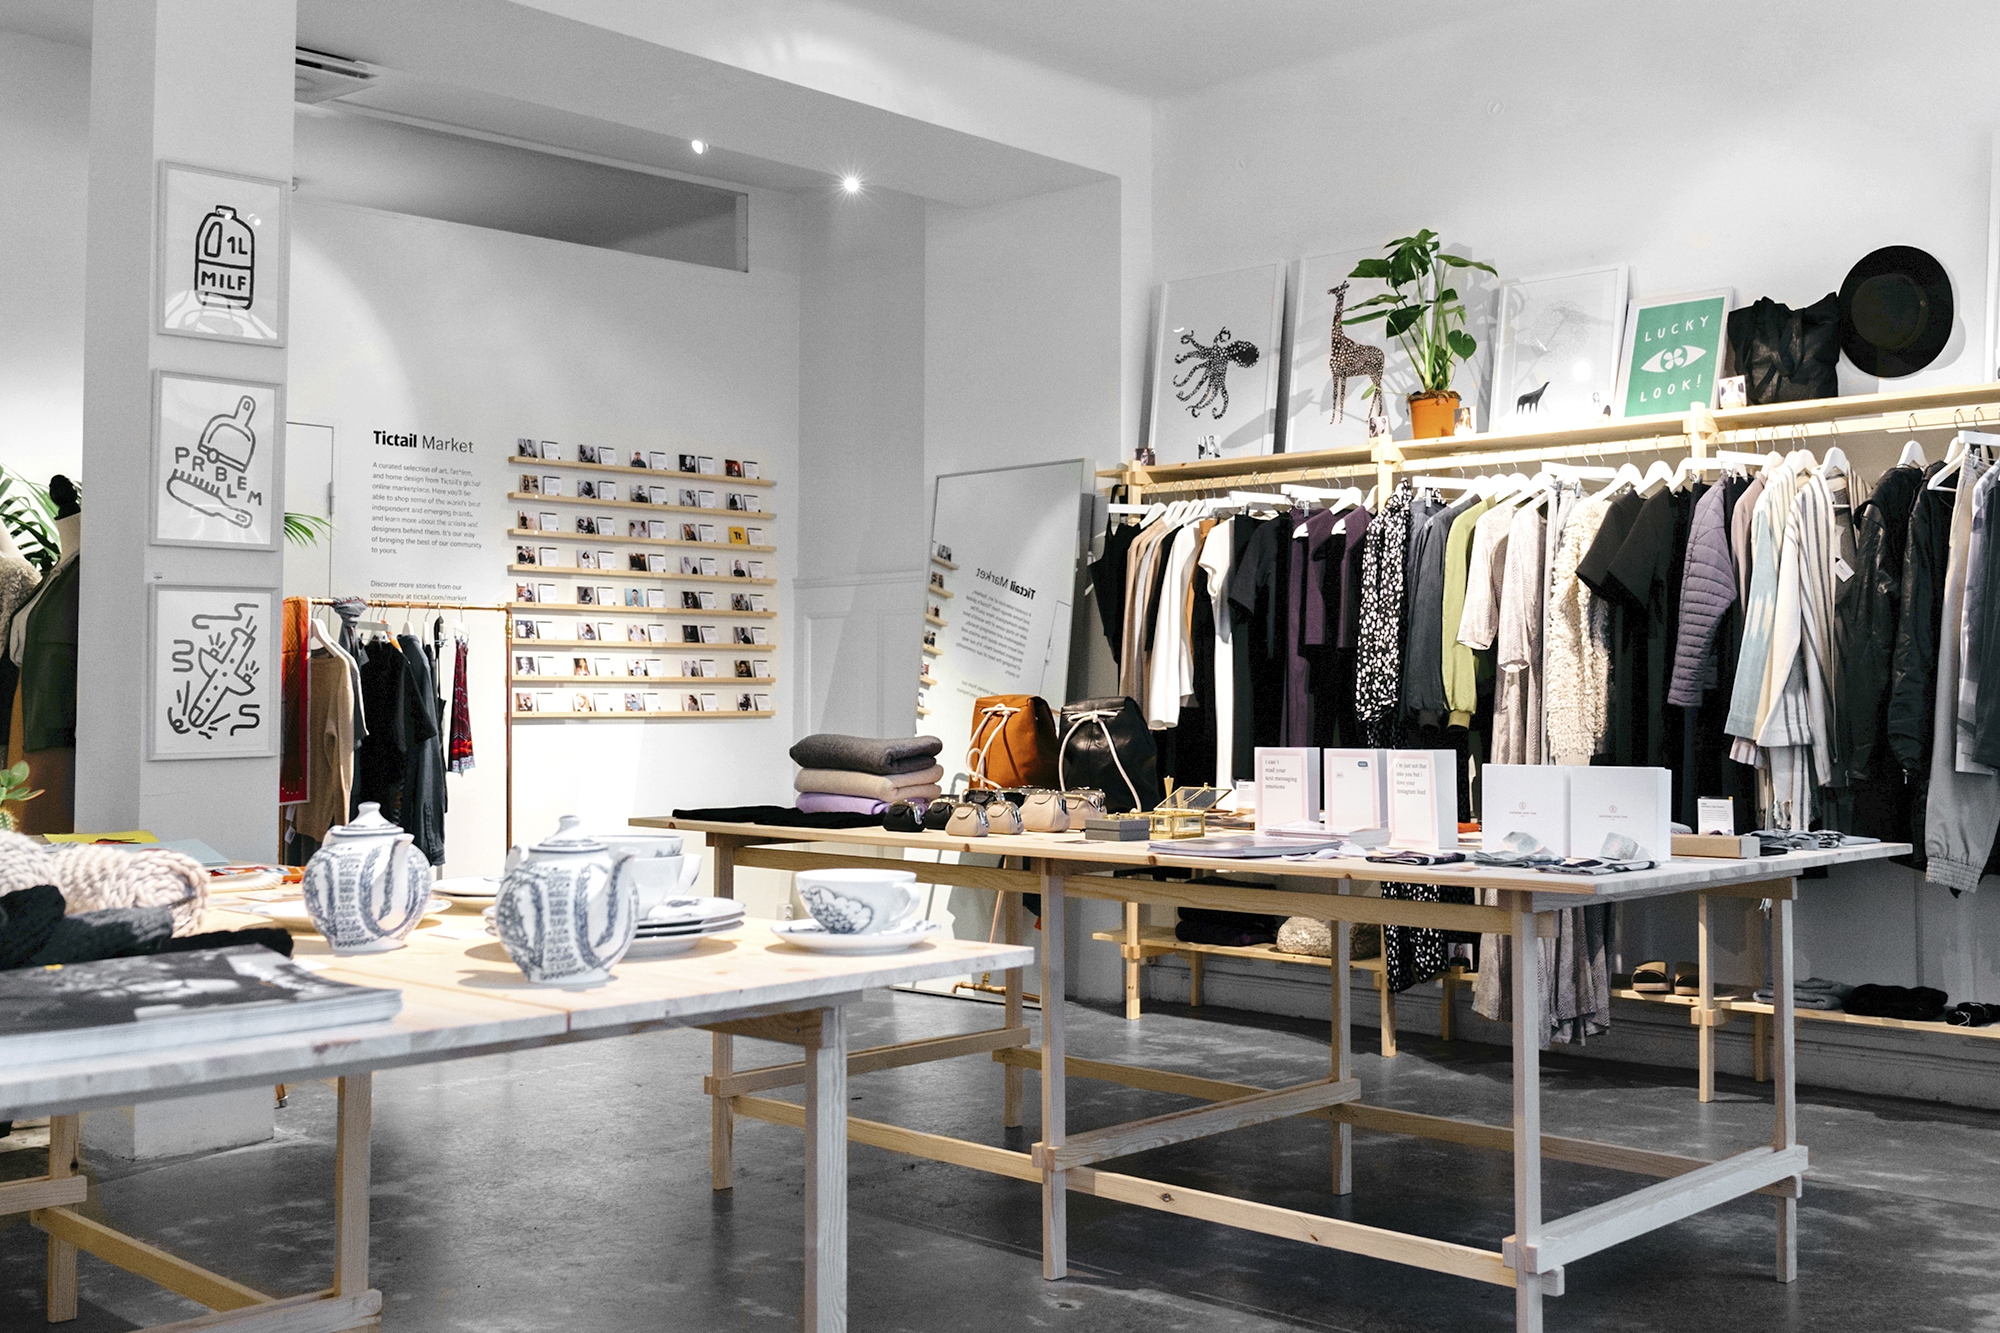 Tictail_HolidayPopUp_Stockholm_0001_Interior02.jpg